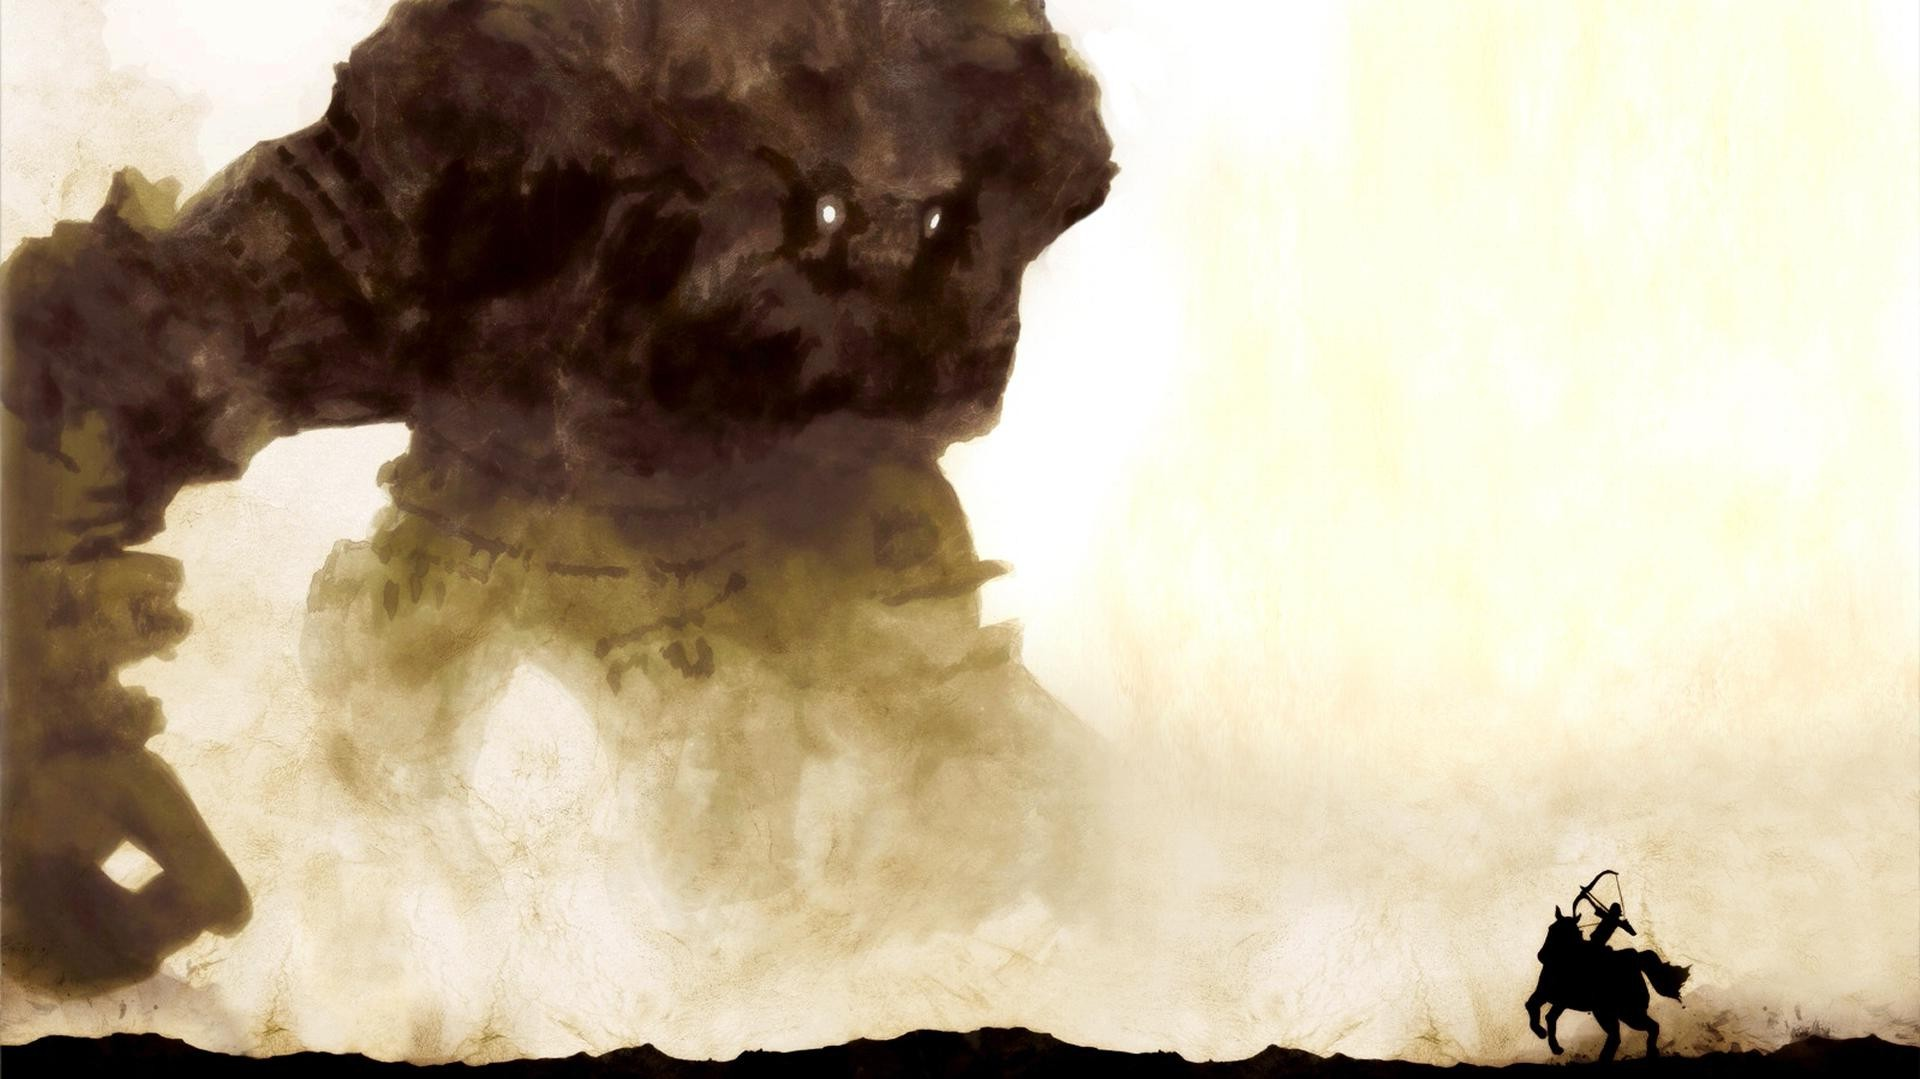 Cosmos Quotes Wallpaper Shadow Of The Colossus Colossal Titan Artwork Fantasy